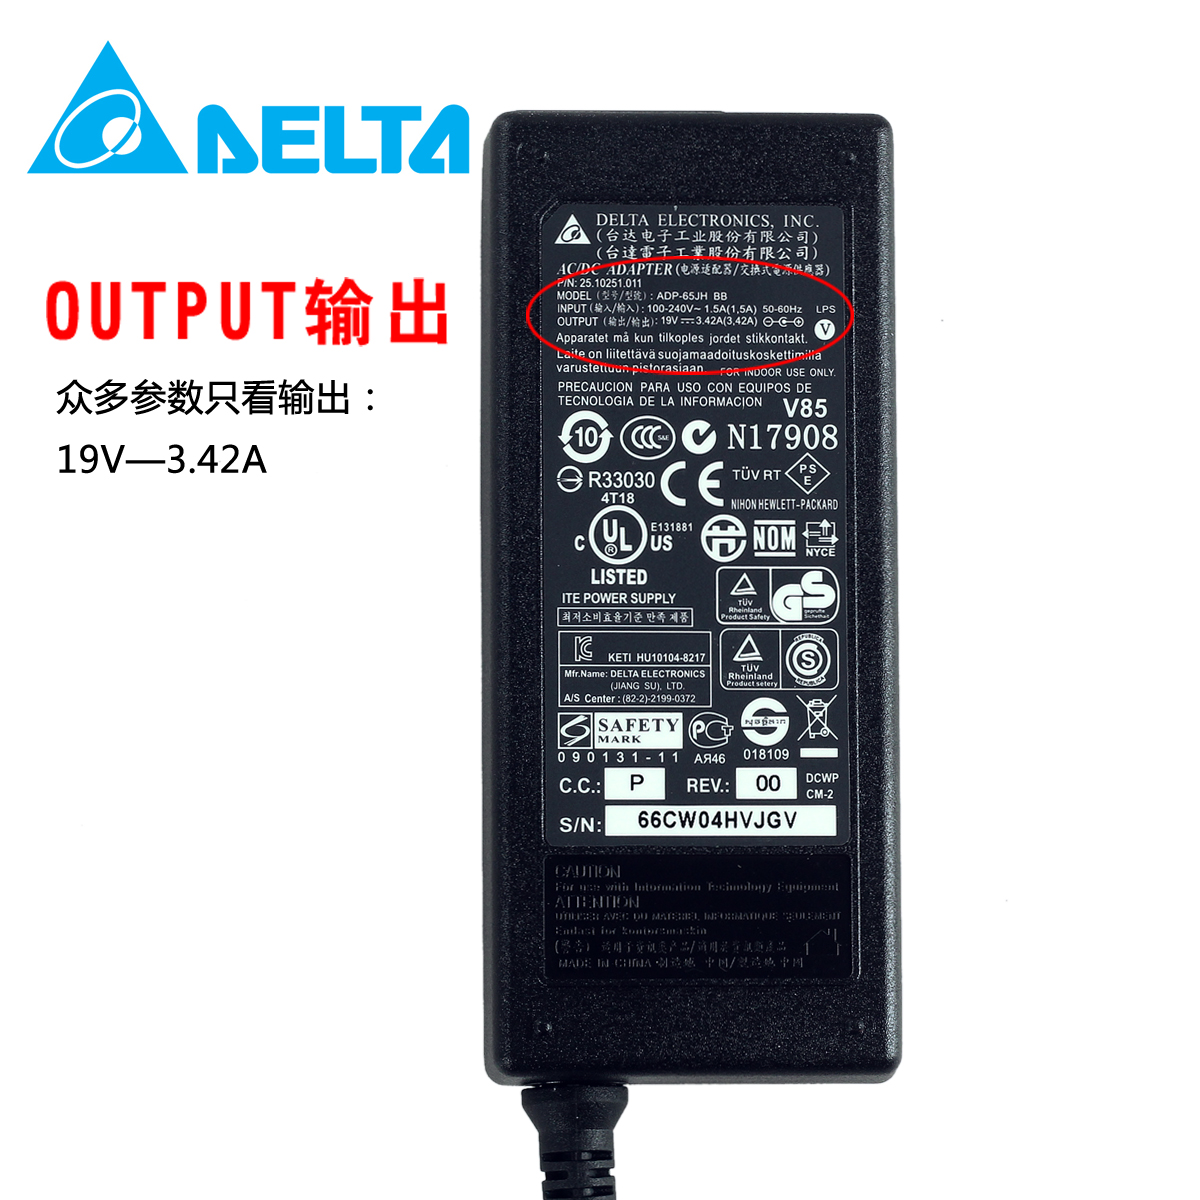 Acer 19v3.42a adapter Notebook Charger line packet send line promotion power adapter